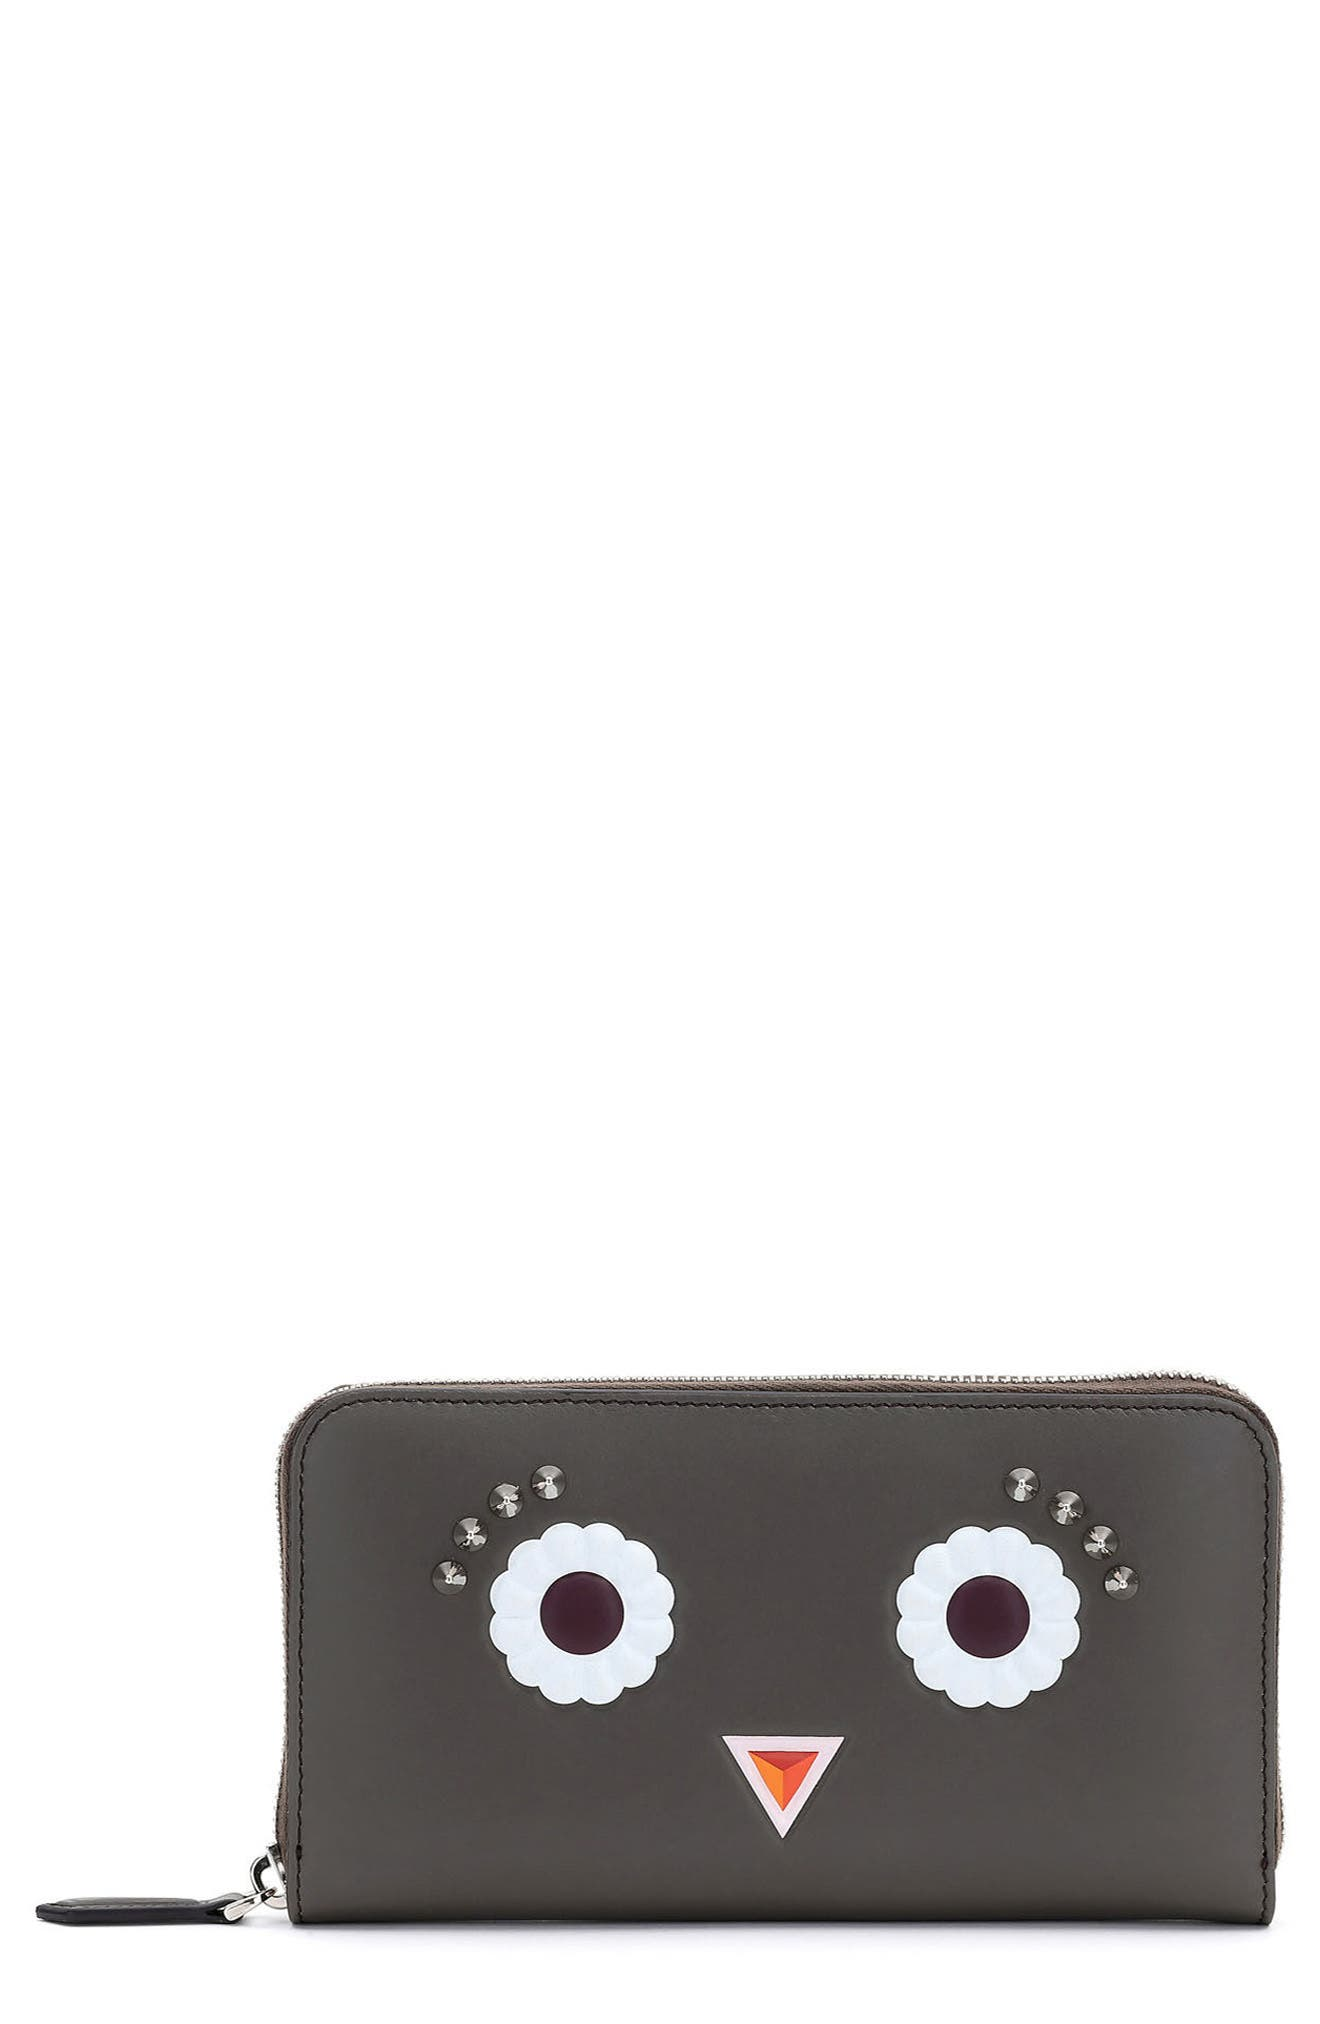 Fendi Faces Leather Zip Around Wallet